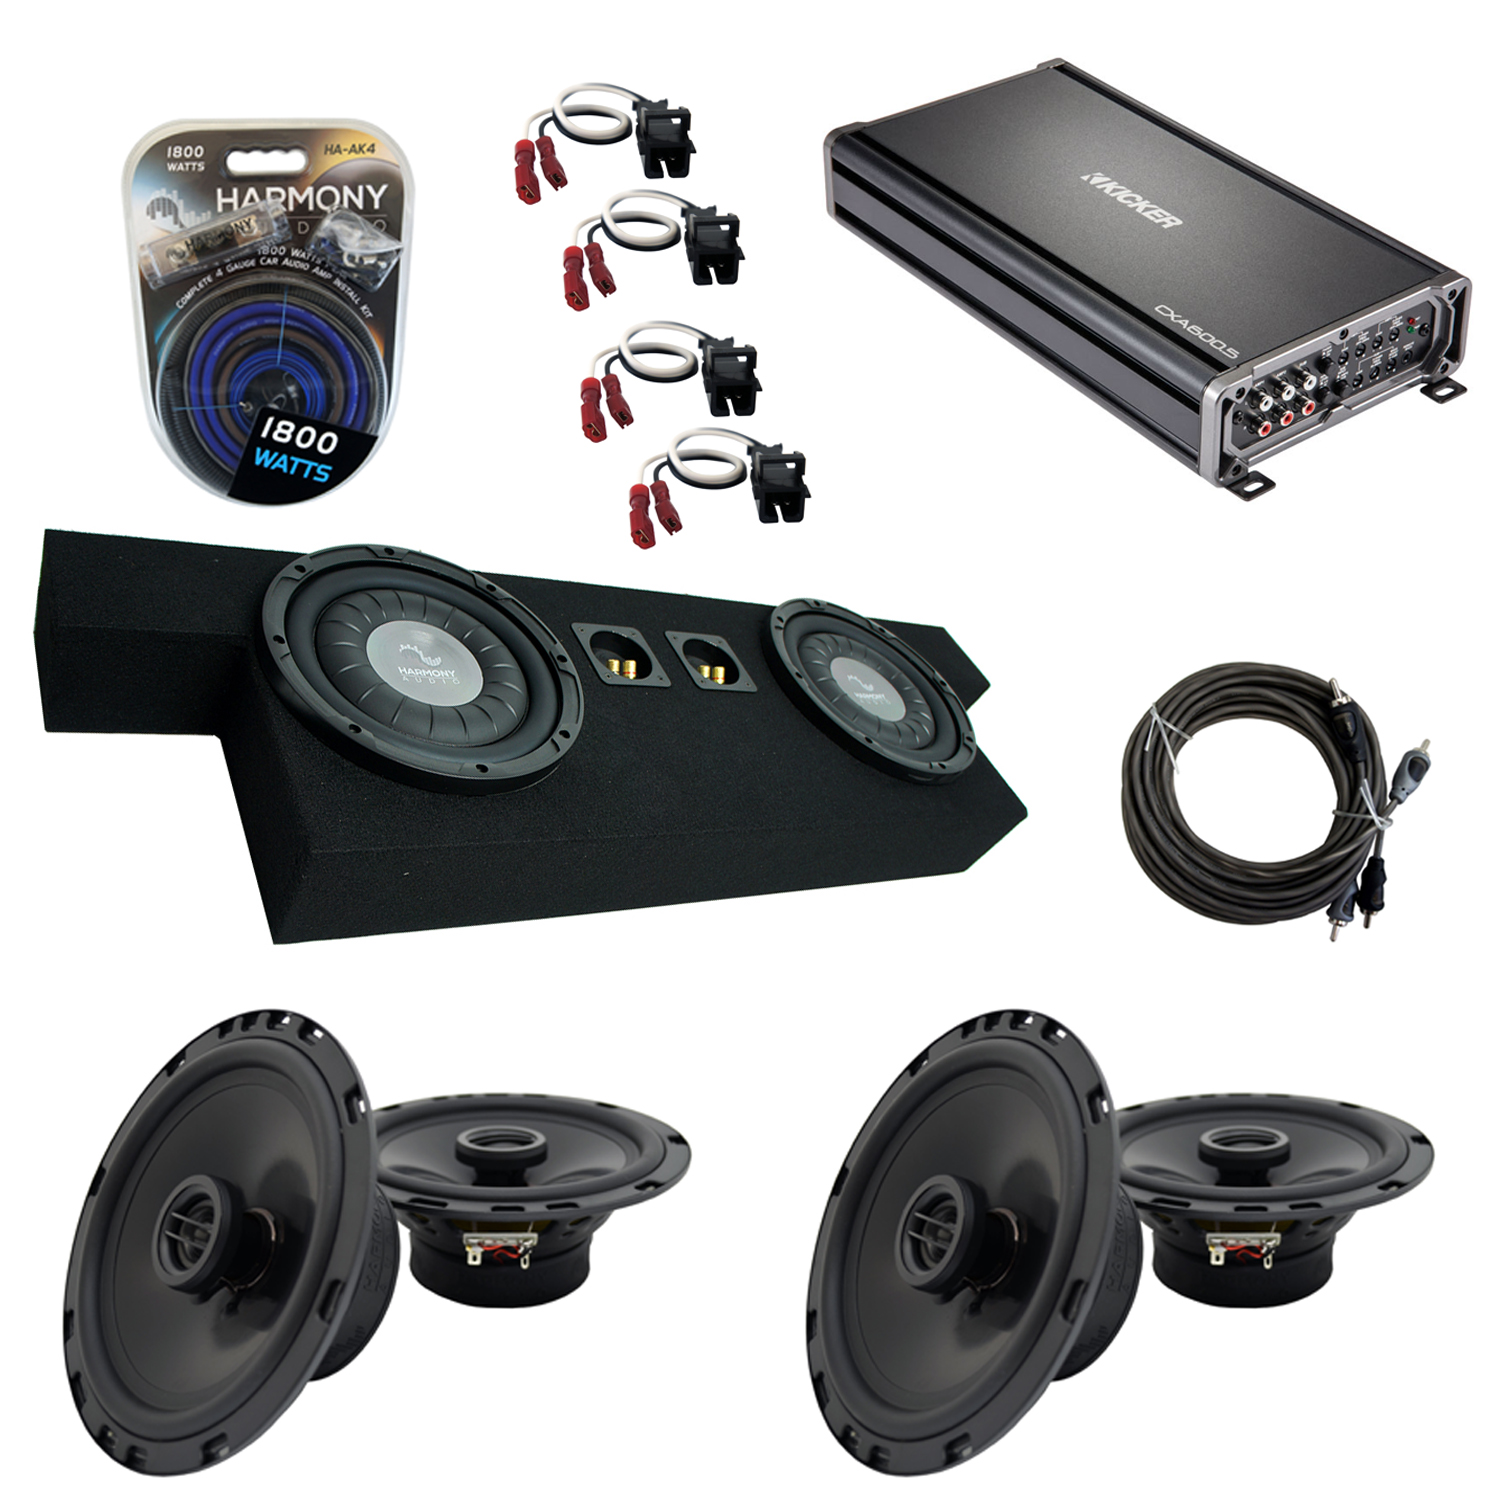 "Compatible with GMC Canyon 2004-2012 Crew Cab Truck Harmony Dual 10"" Sub Box Speakers & Amp"